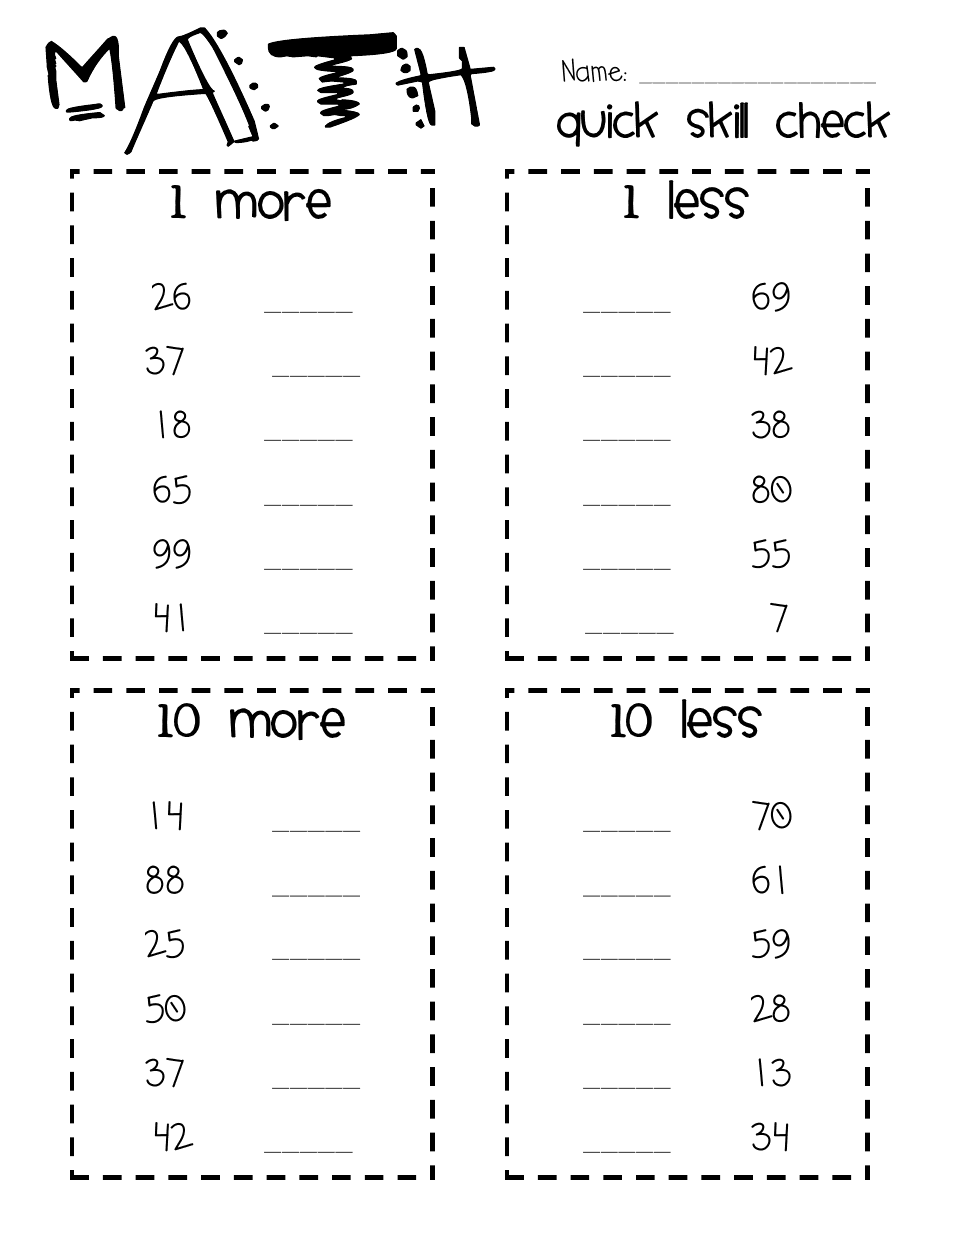 Place Value Worksheets place value worksheets pdf : 10 more, 10 less, 1 more, 1 less.pdf | Math | Pinterest | Pdf ...